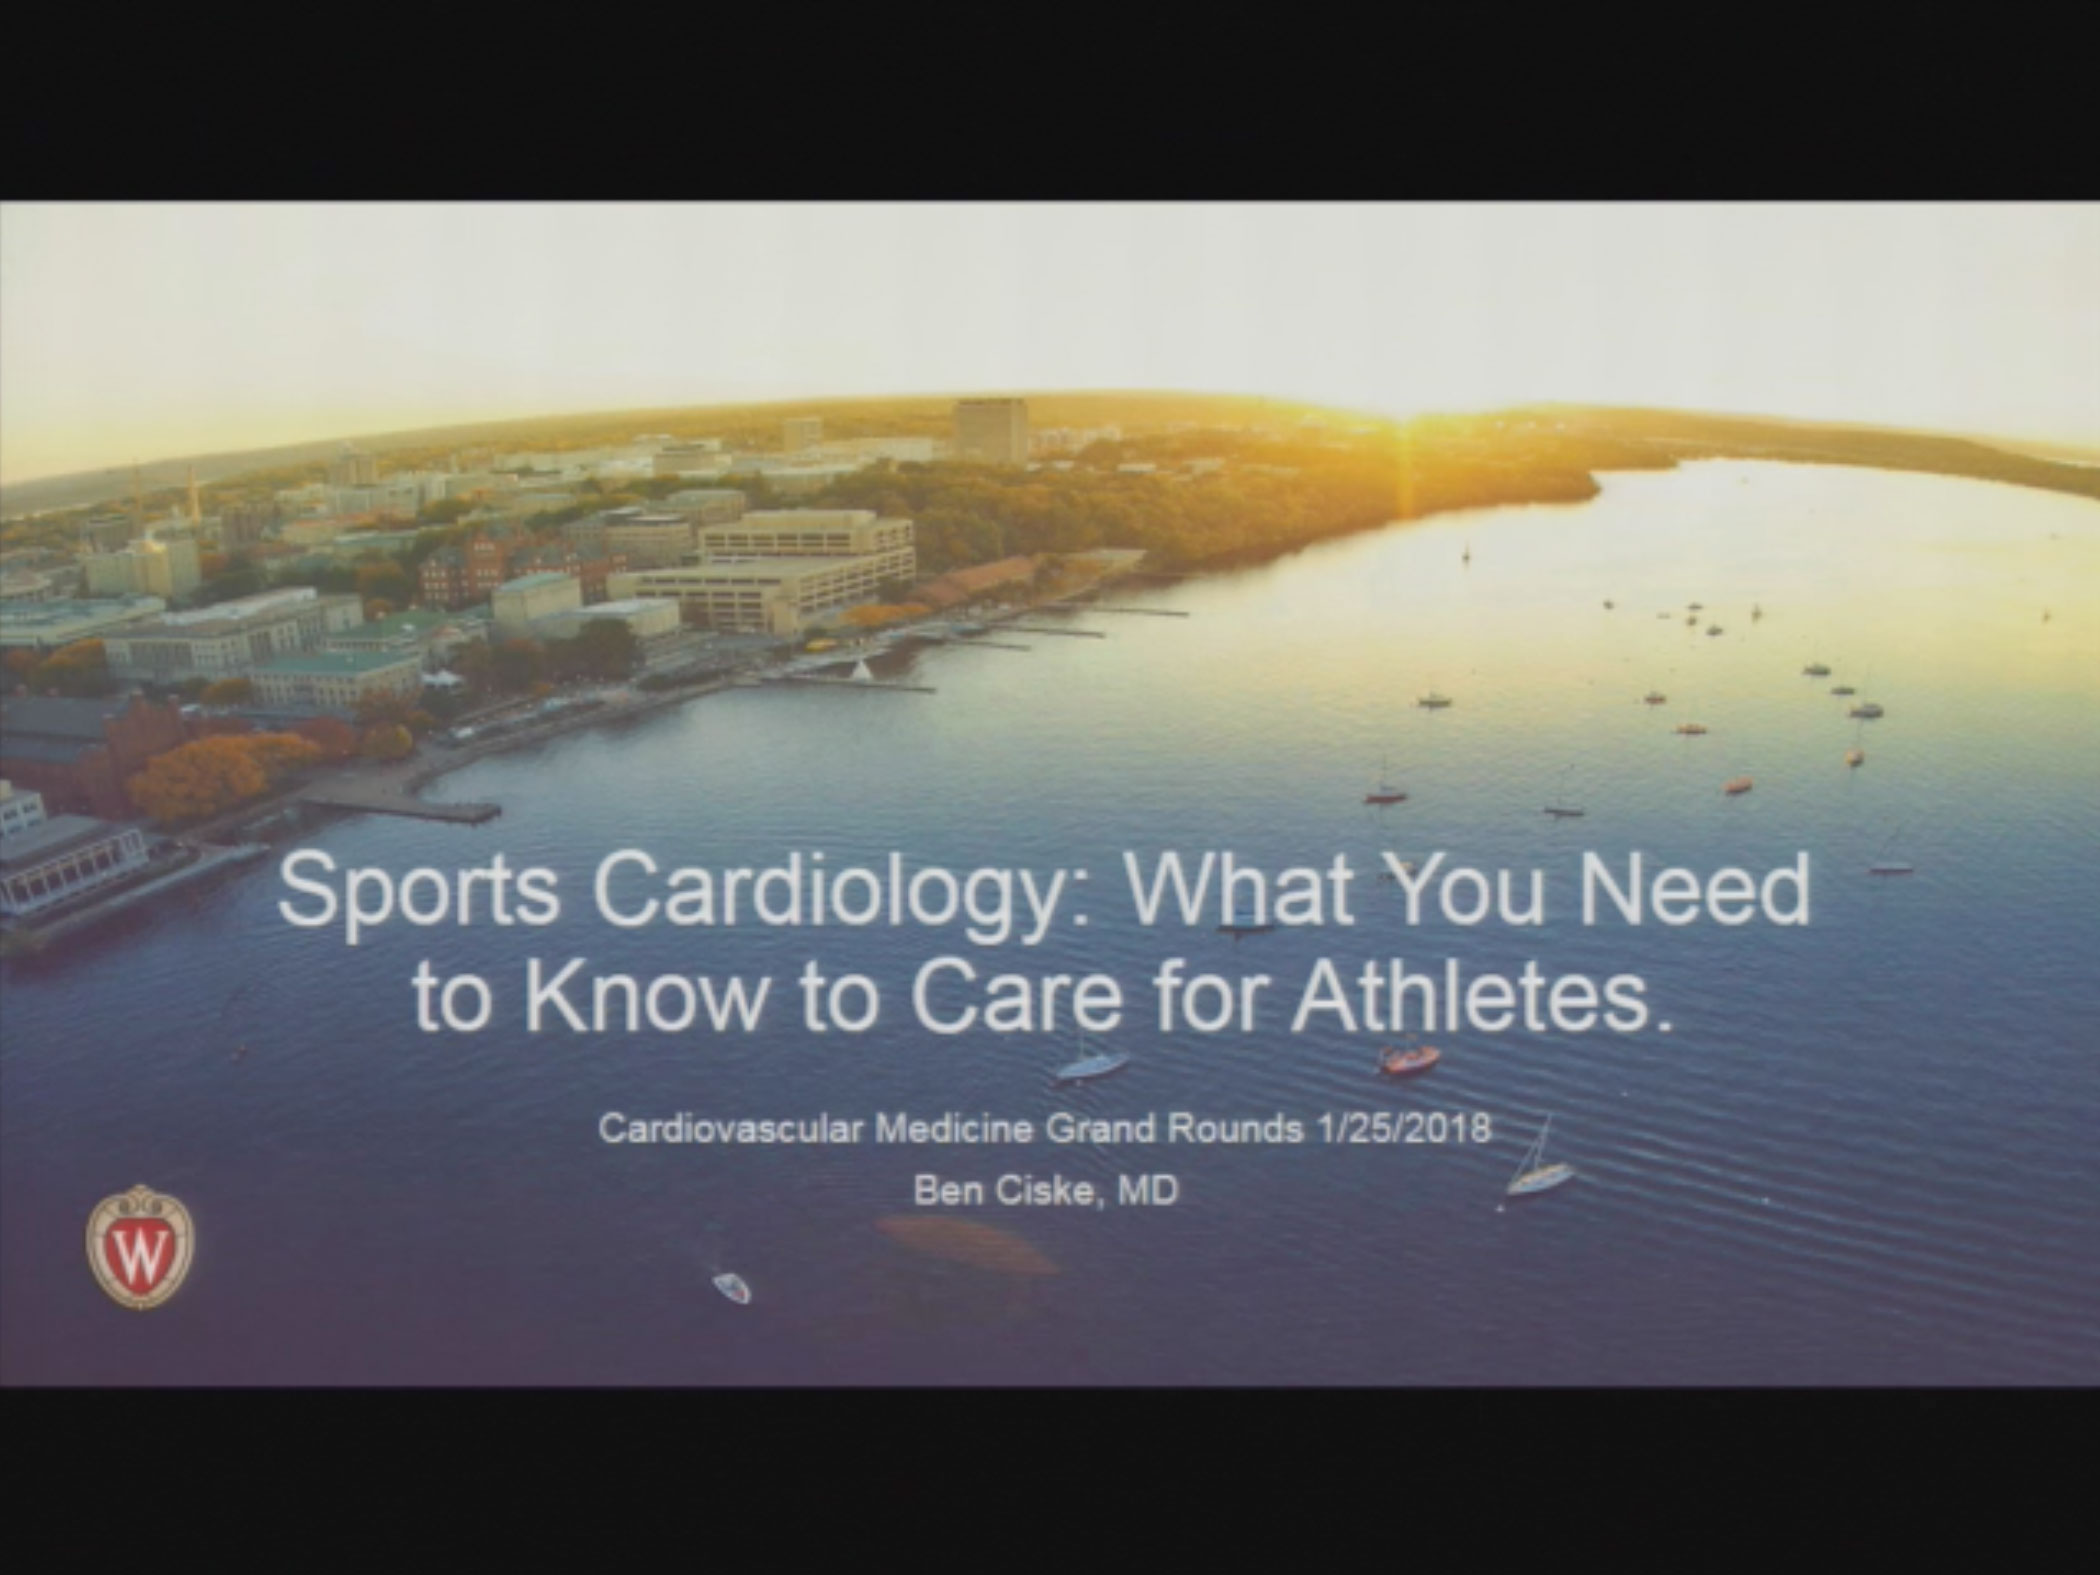 Picture from Sports Cardiology: What You Need to Know to Care for Athletes video